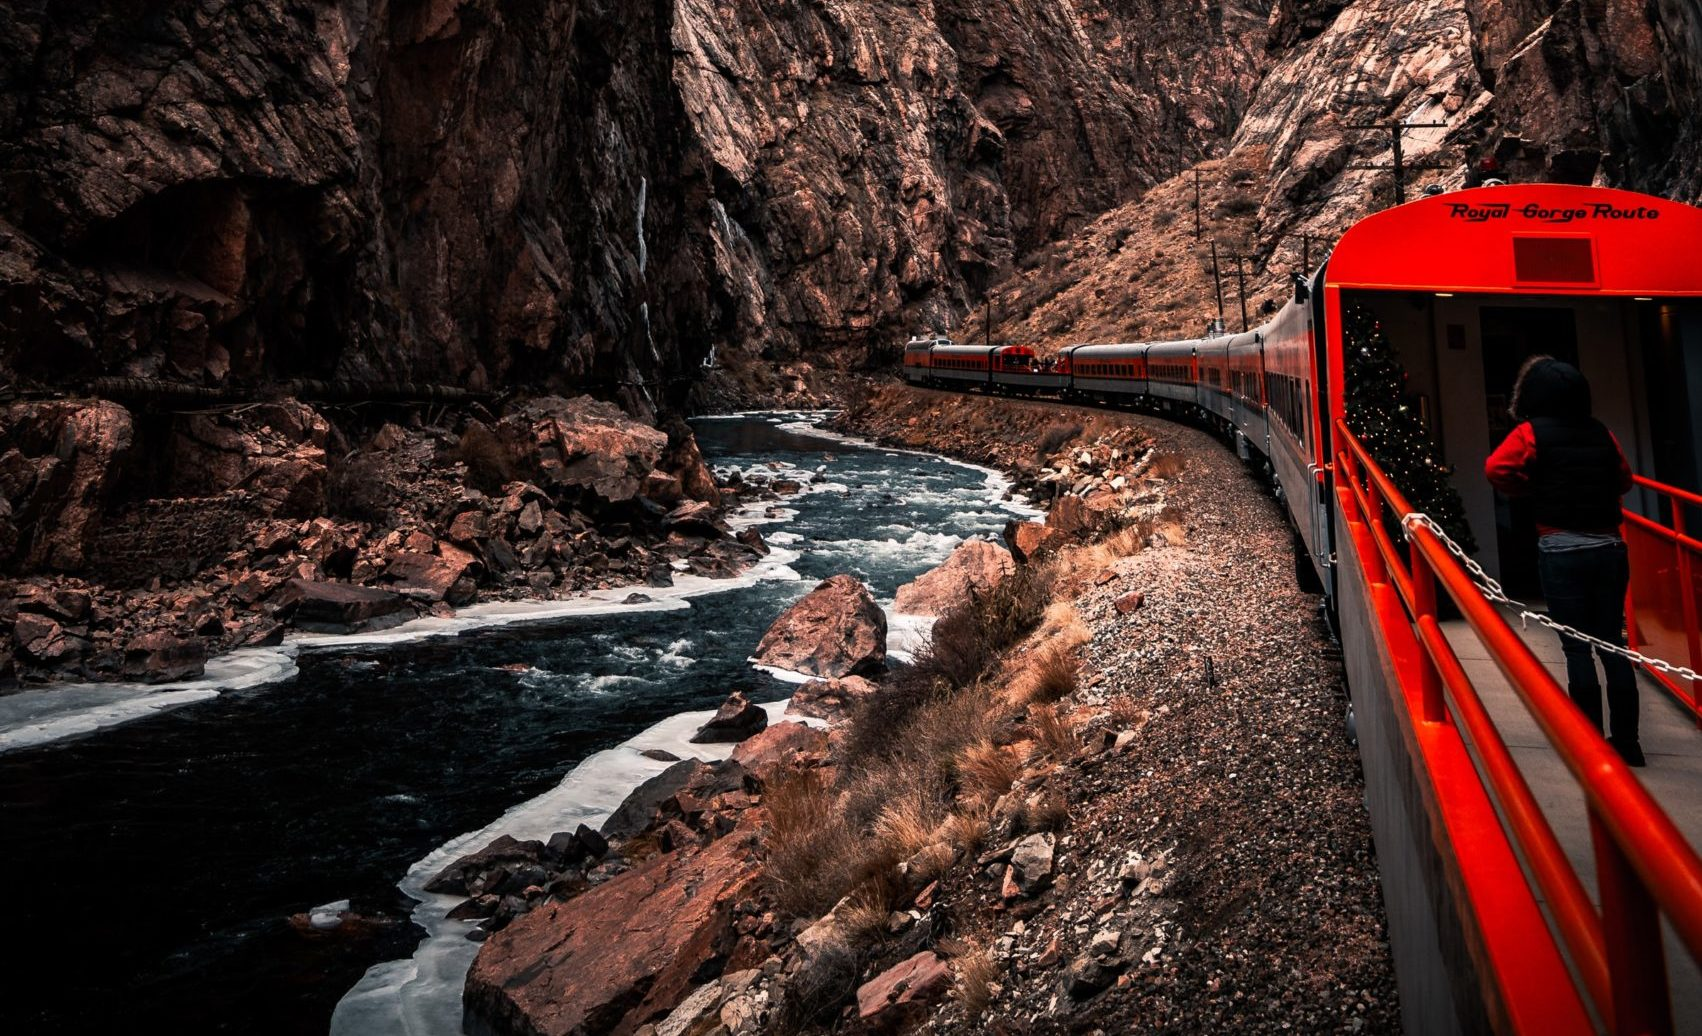 Sights You'll Find on the Royal Gorge Route